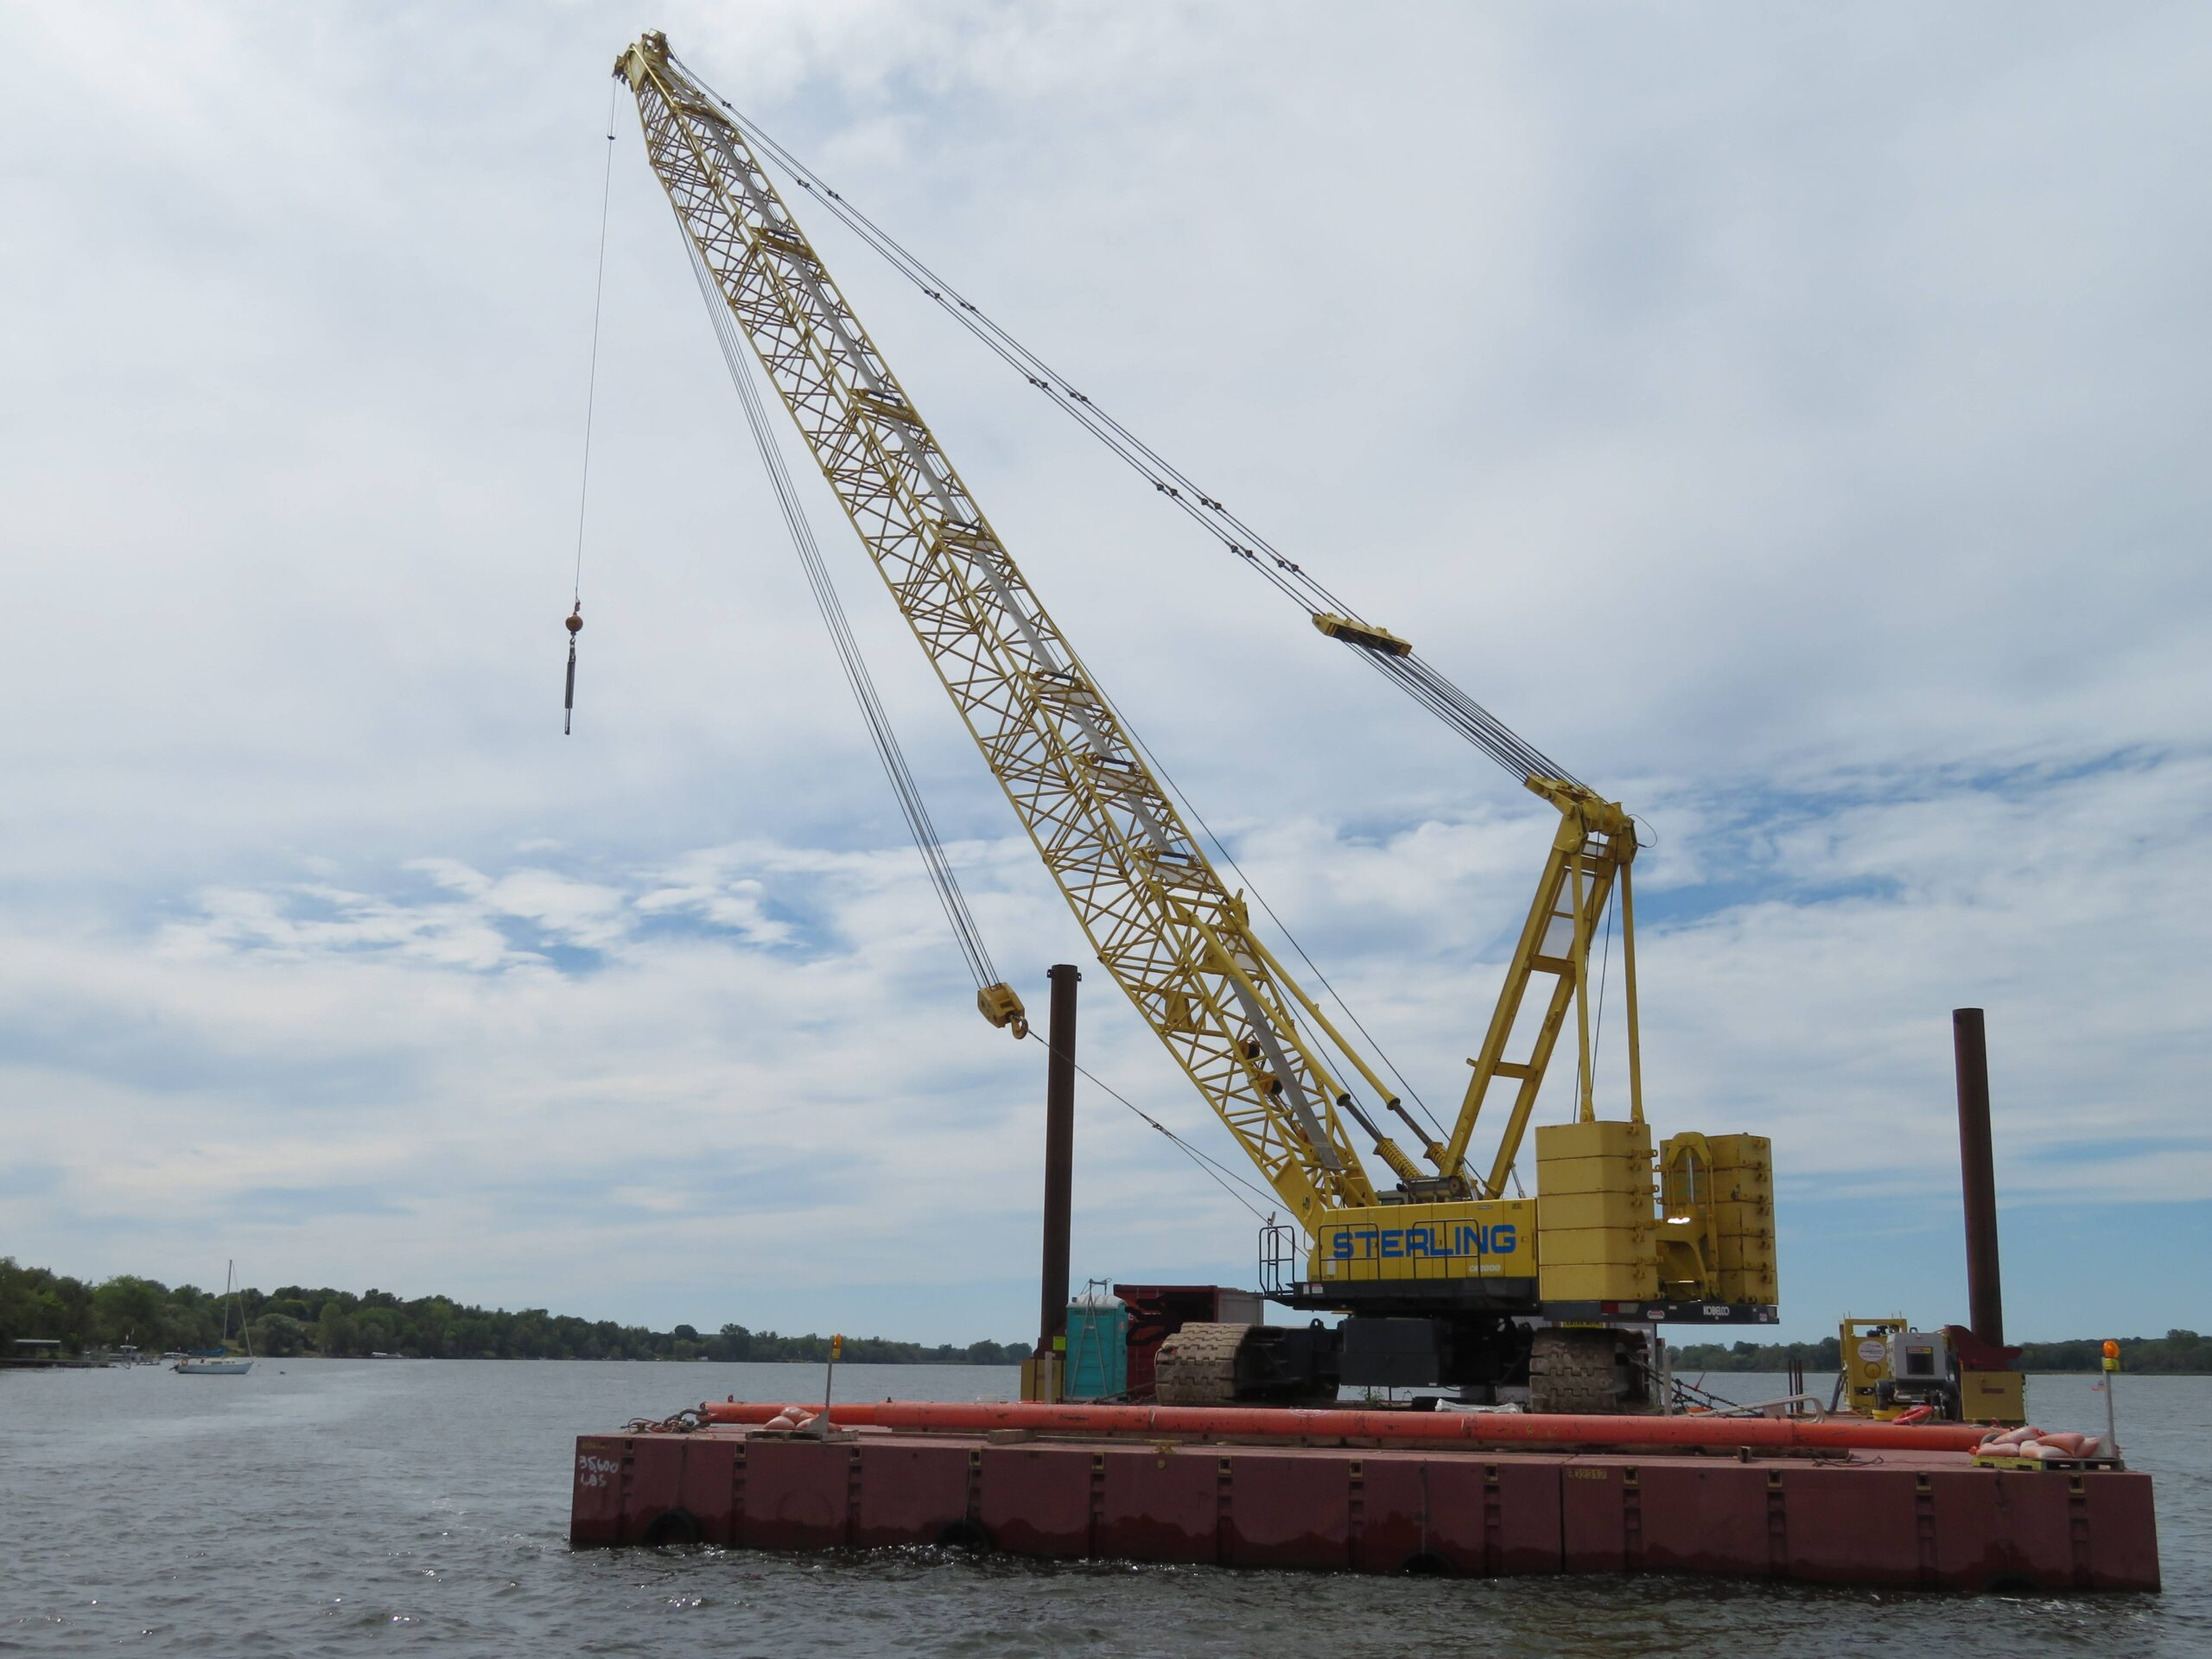 200-ton crane on the barge, spreader bar ready for the second girder removal